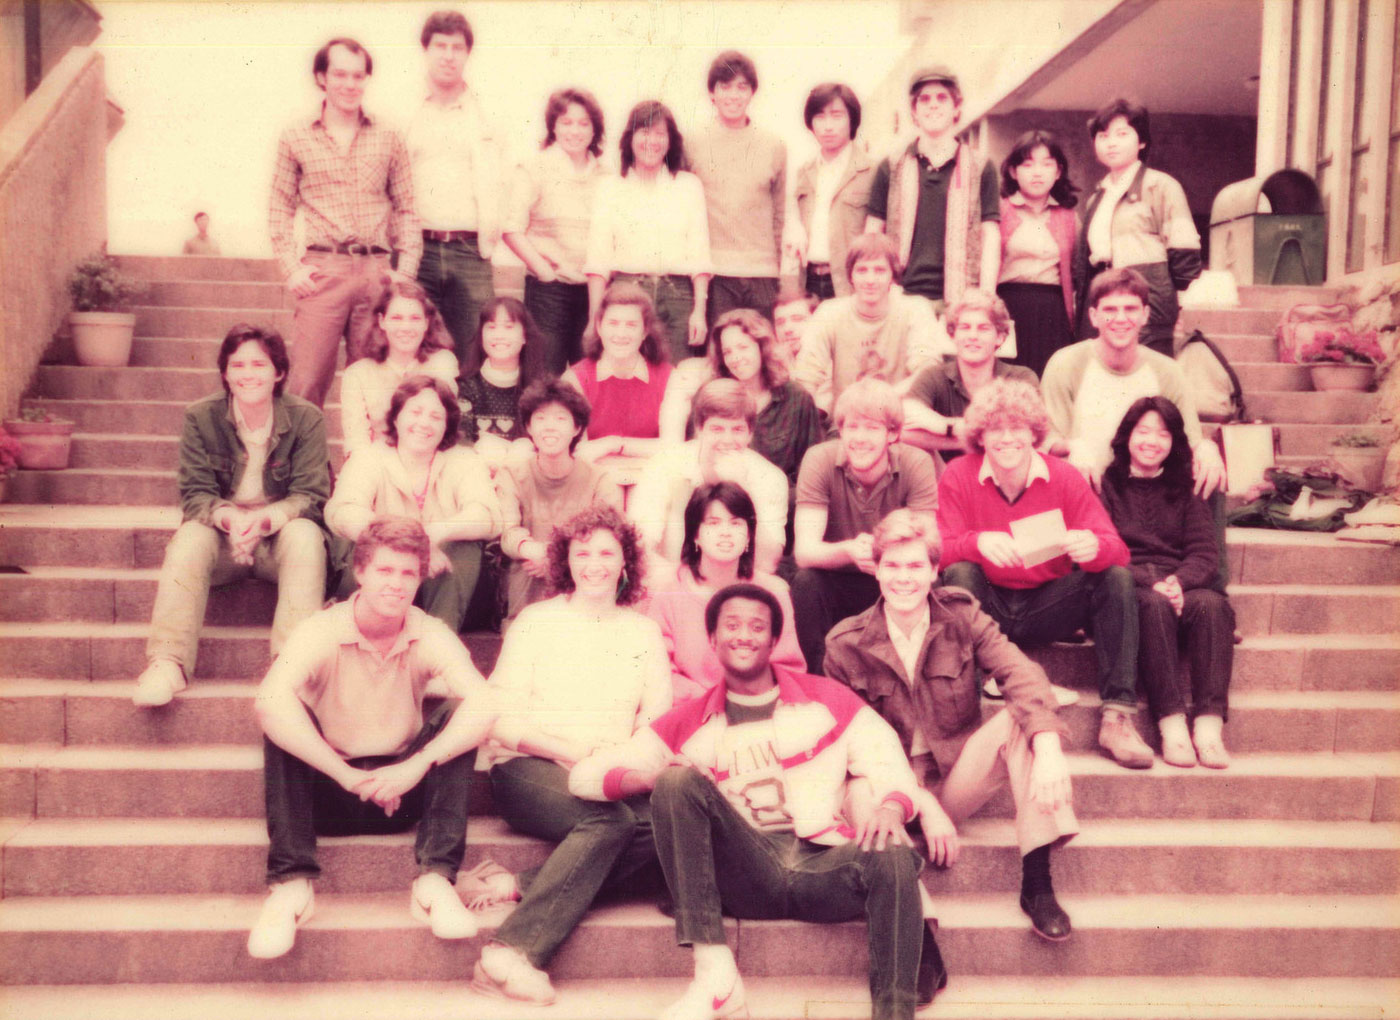 CUHK receives incoming exchange students (1987-88)